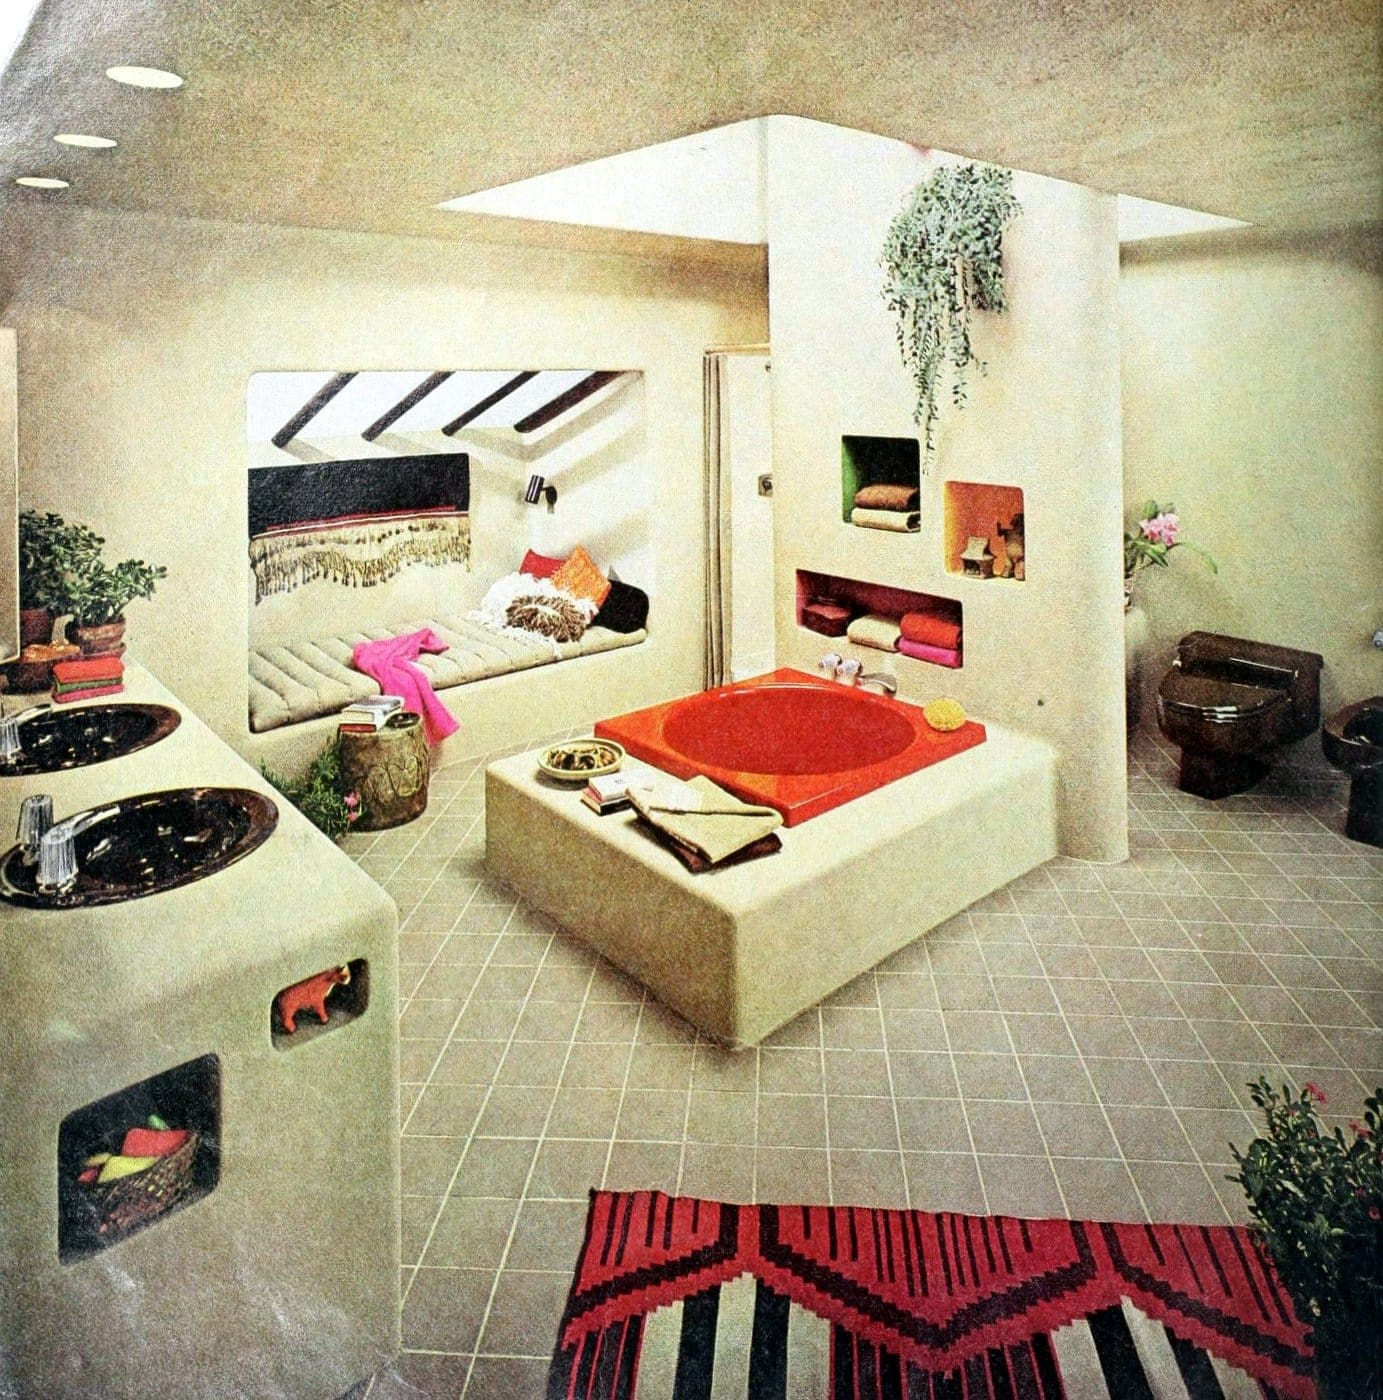 Grand retro 70s bathroom suite with orange tub and day bed